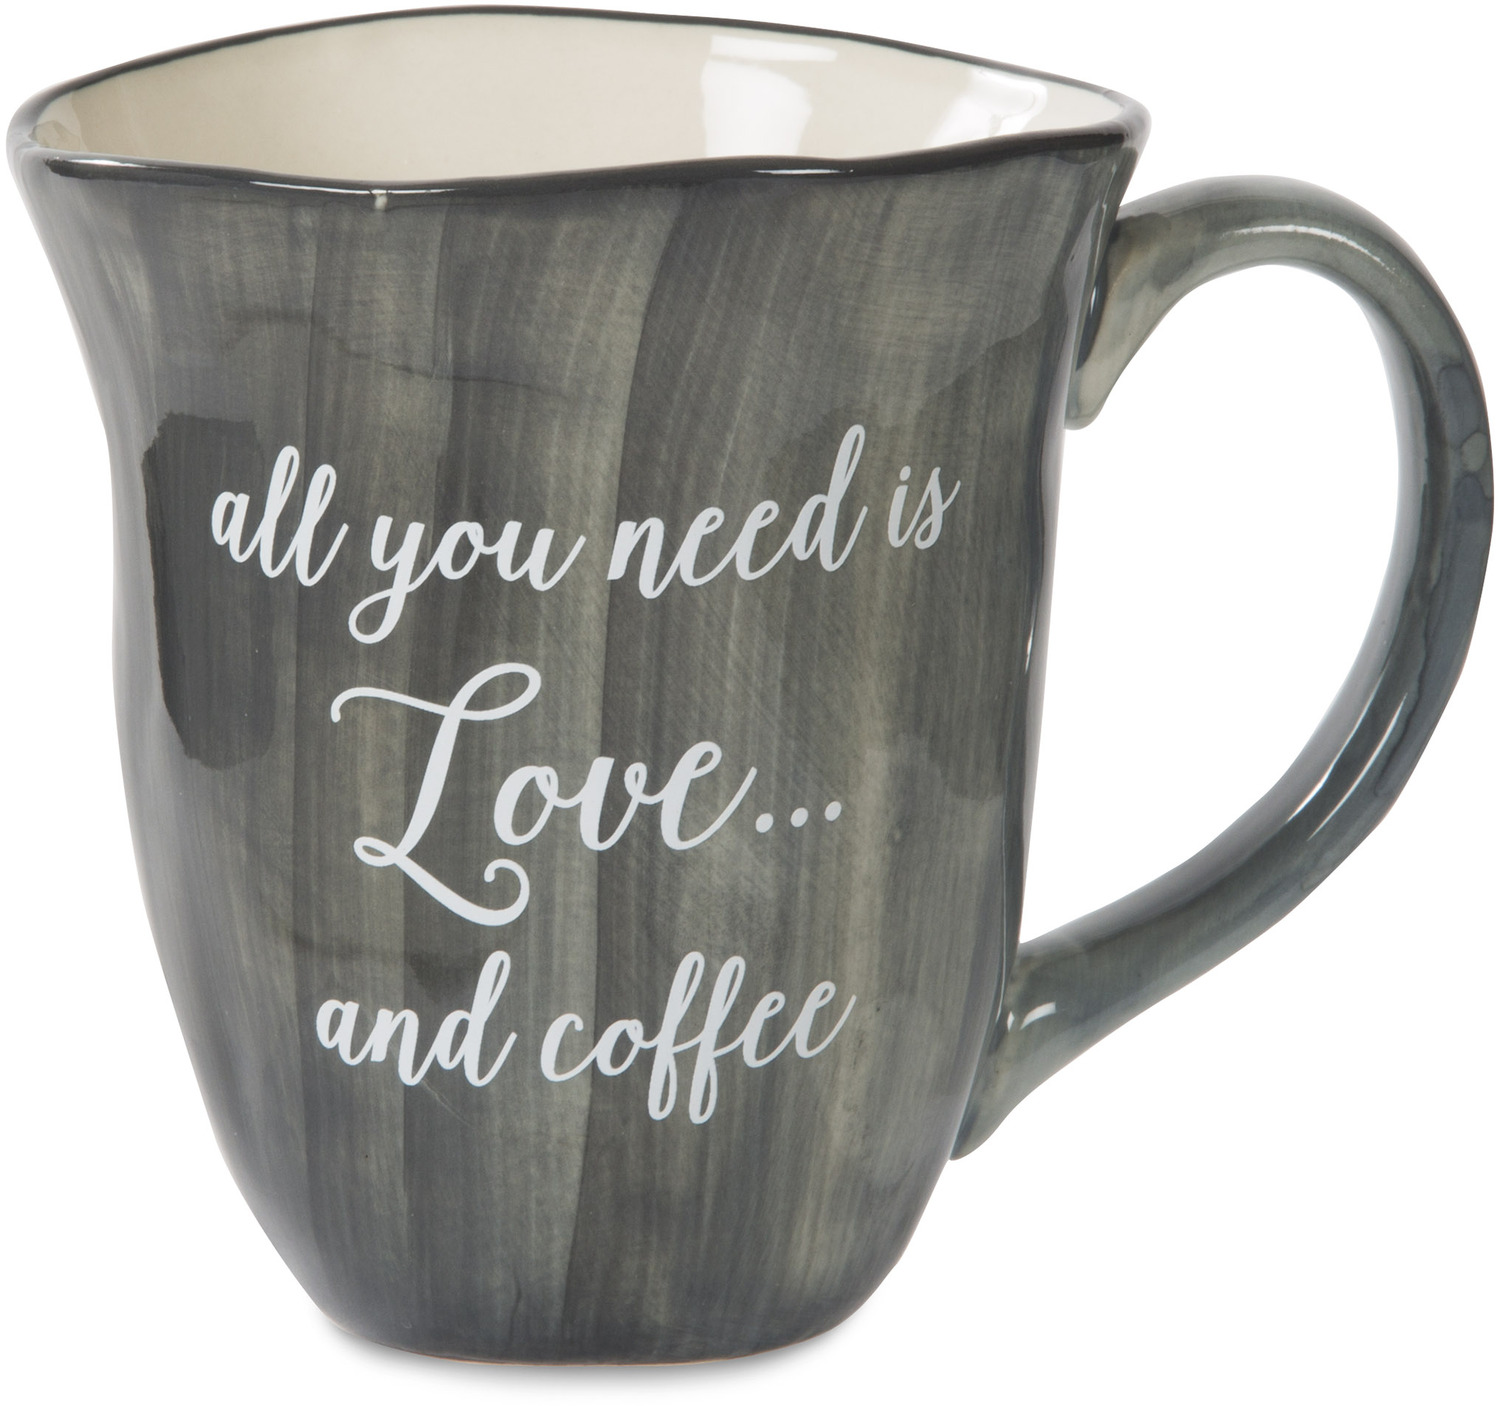 Love and Coffee by Emmaline - Love and Coffee - 16 oz Ceramic Mug